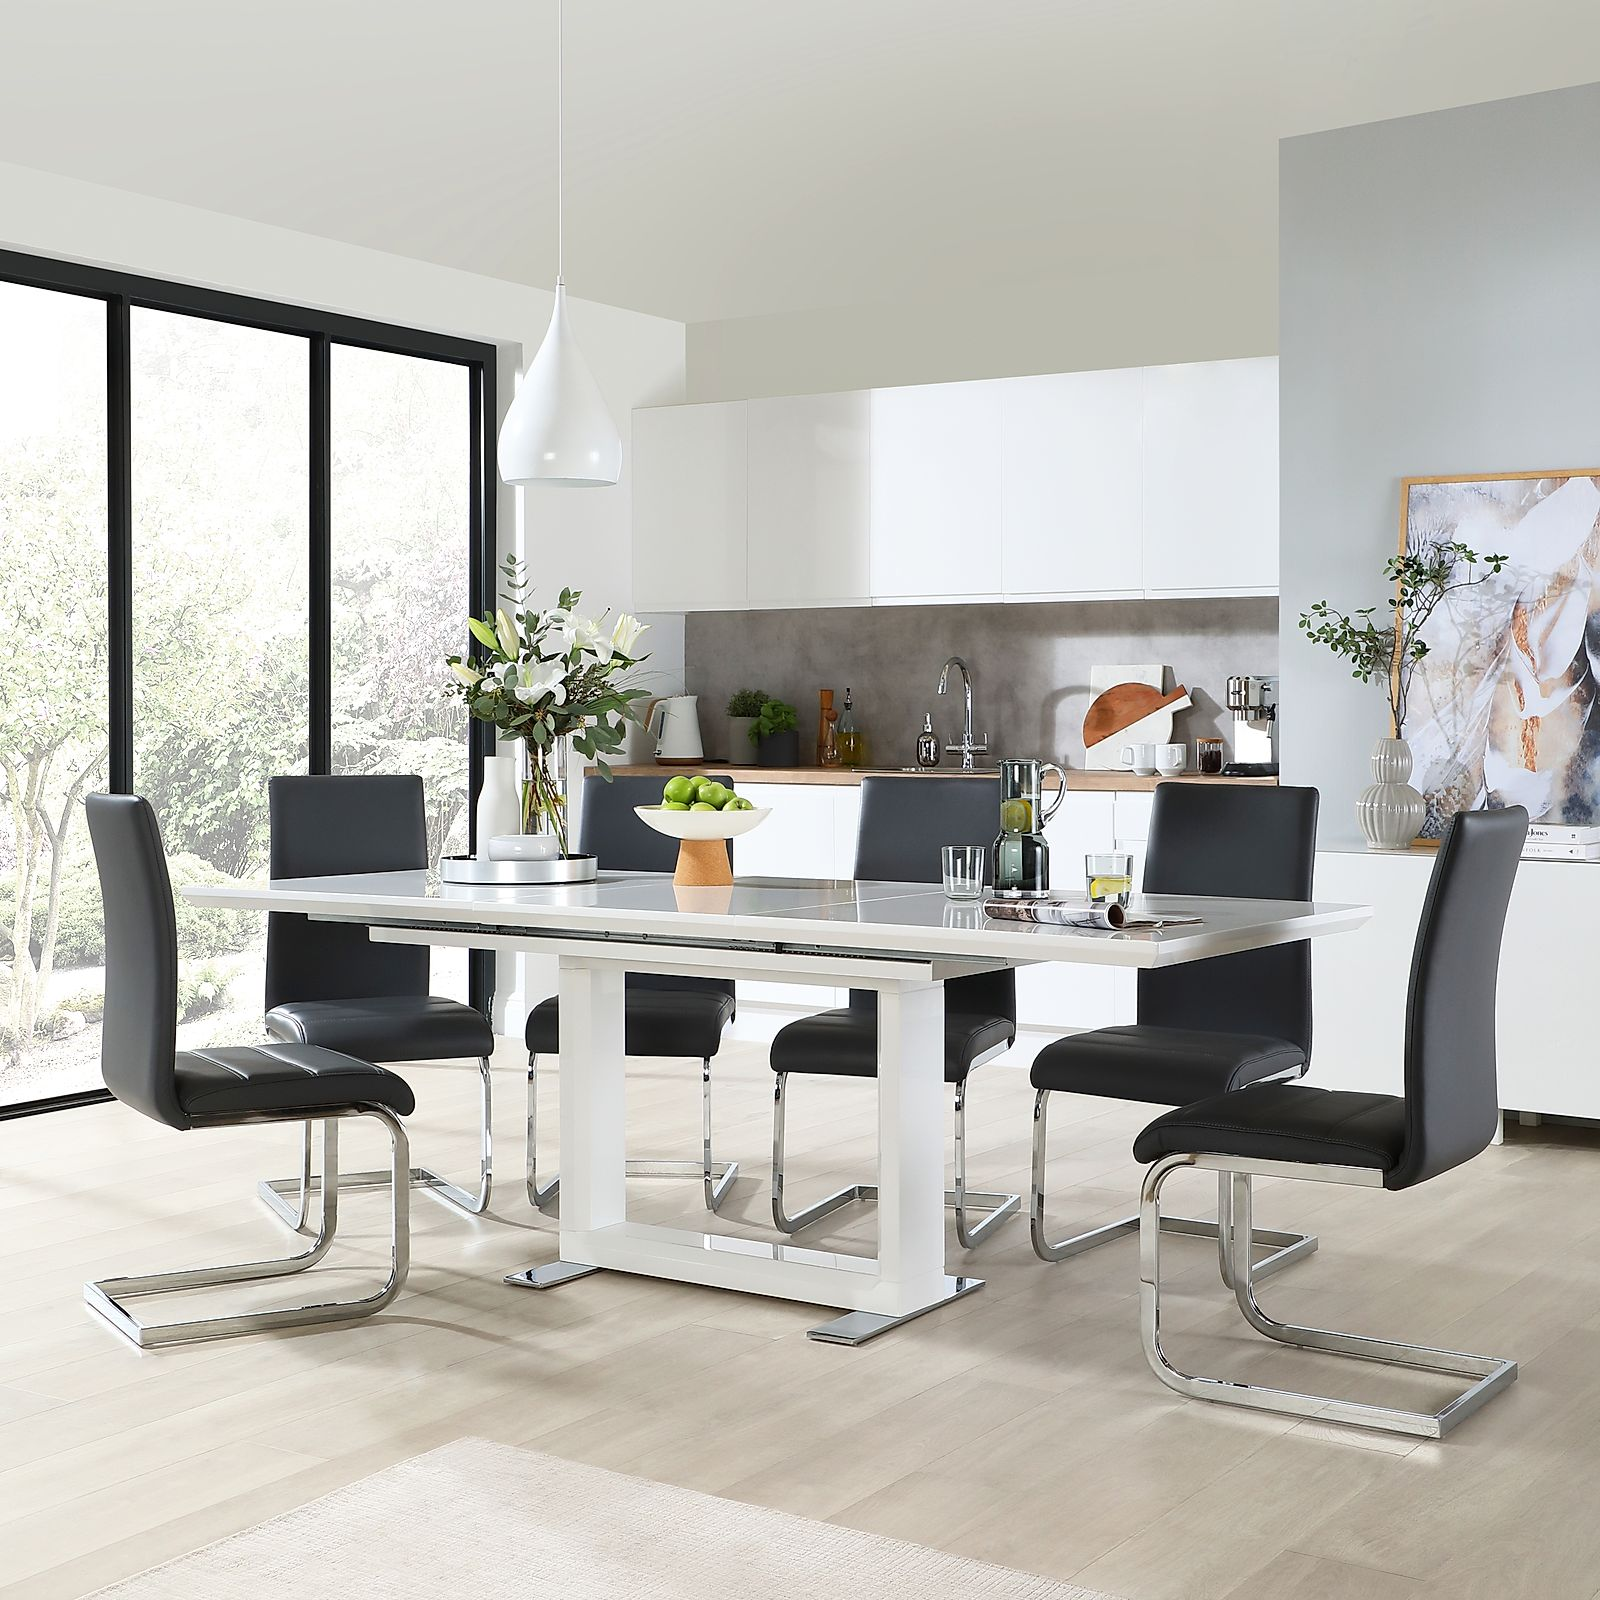 Tokyo White High Gloss Extending Dining Table With 4 Perth